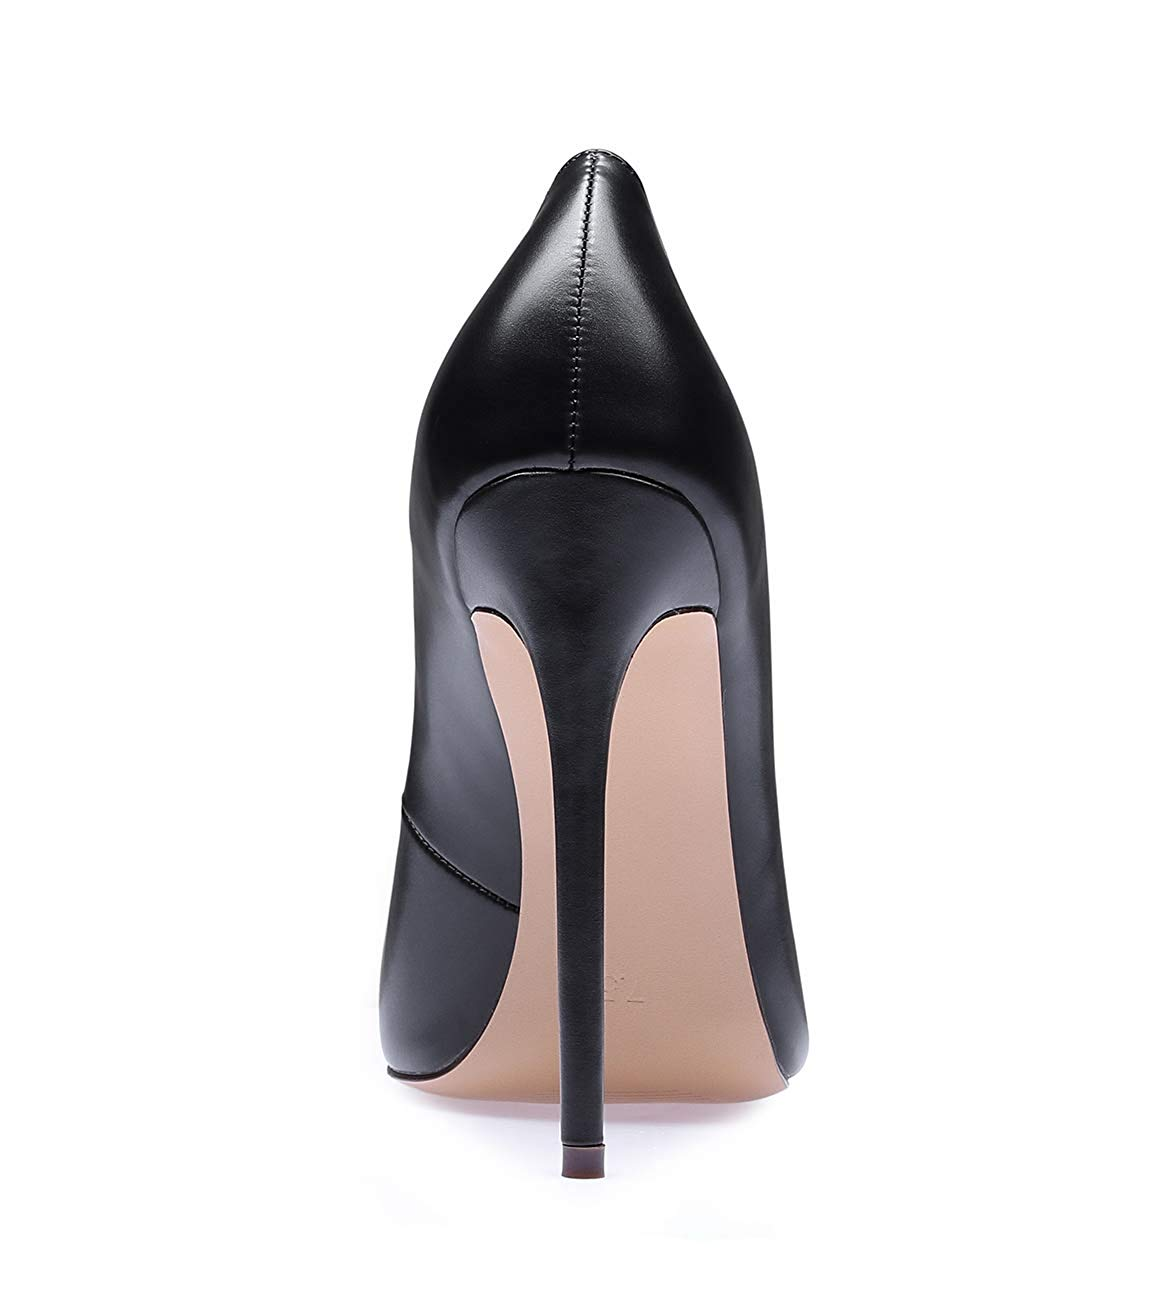 Wholesale fashion sexy women wedding high heels ladies dress shoes